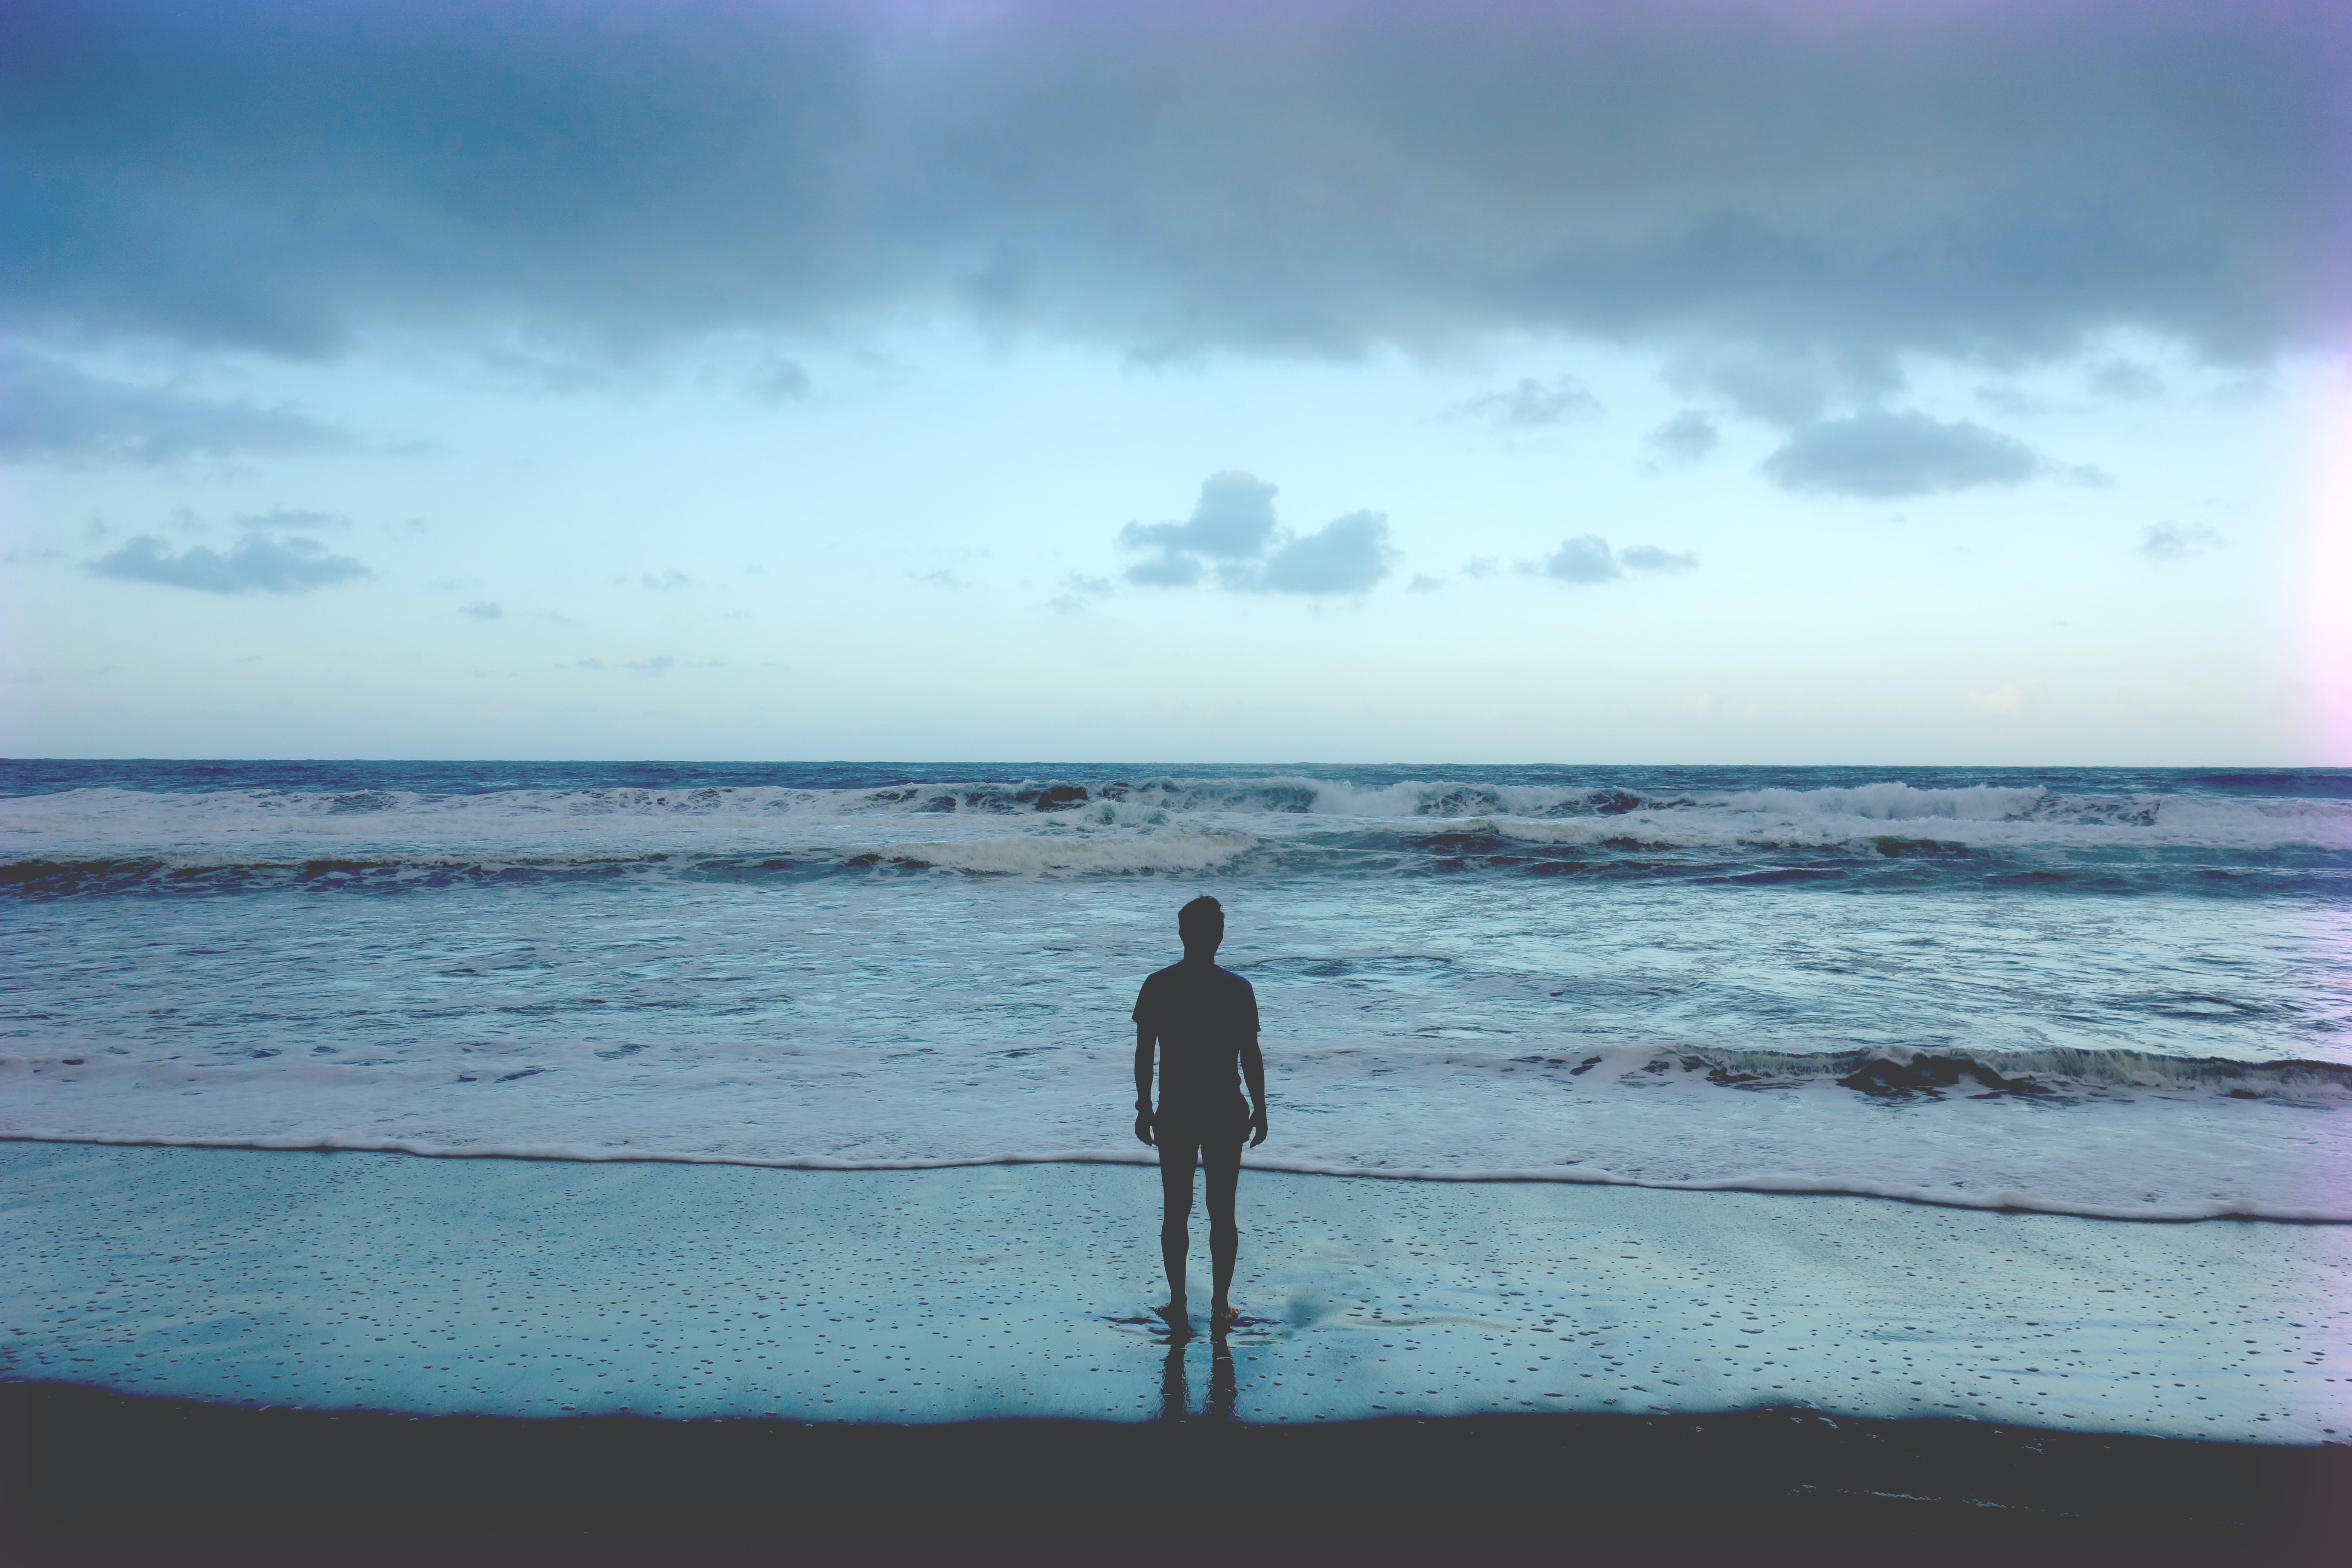 Man silhouette standing on the beach looking at the ocean in Waipio Valley